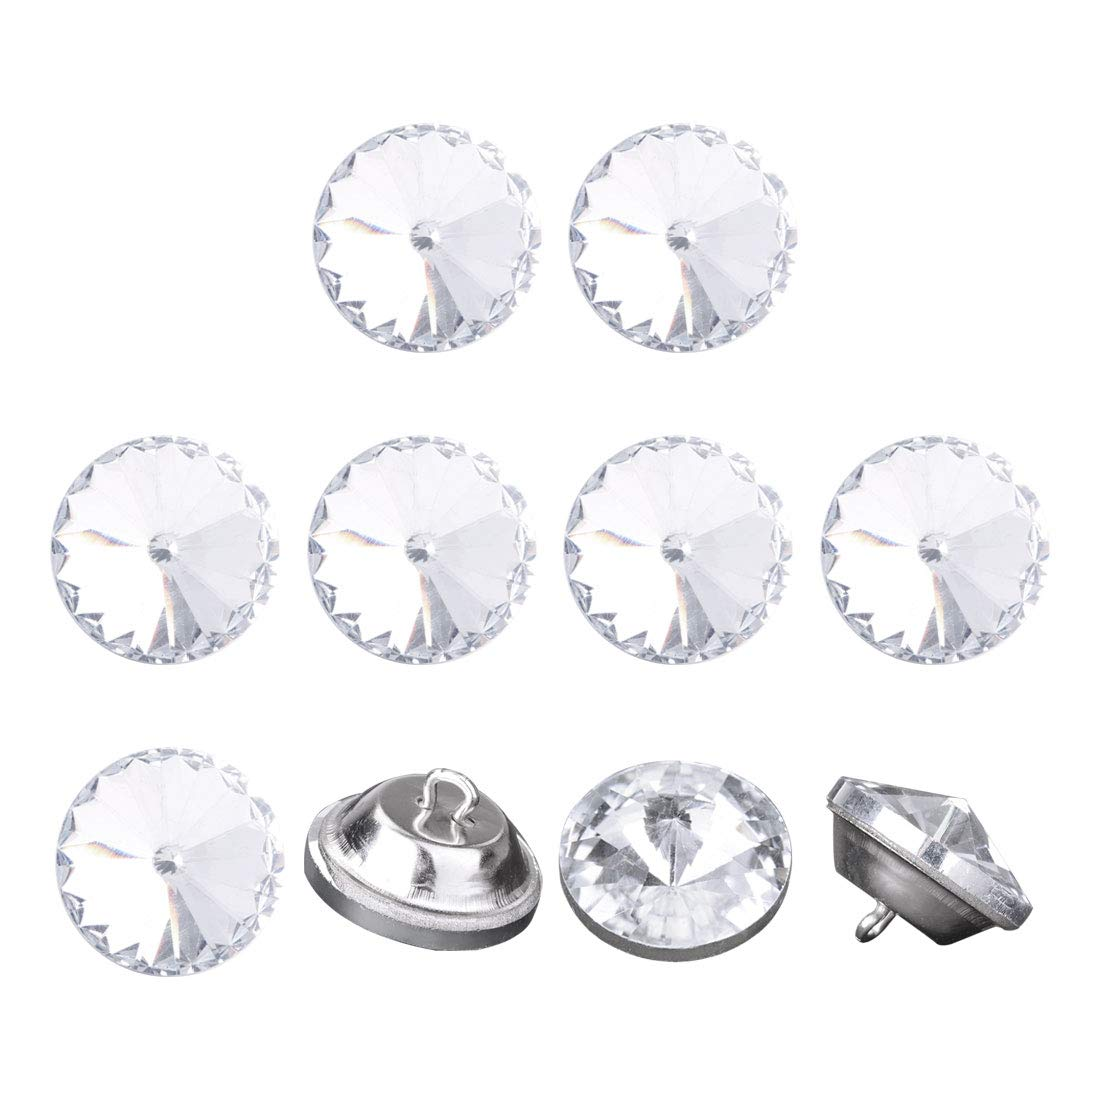 uxcell 10pcs Furniture Tack Nails 20mm Dia Round Head Diamond Shape Glass Thumbtack DIY Sofa Buttons Cupboard Craft Decorate Clear